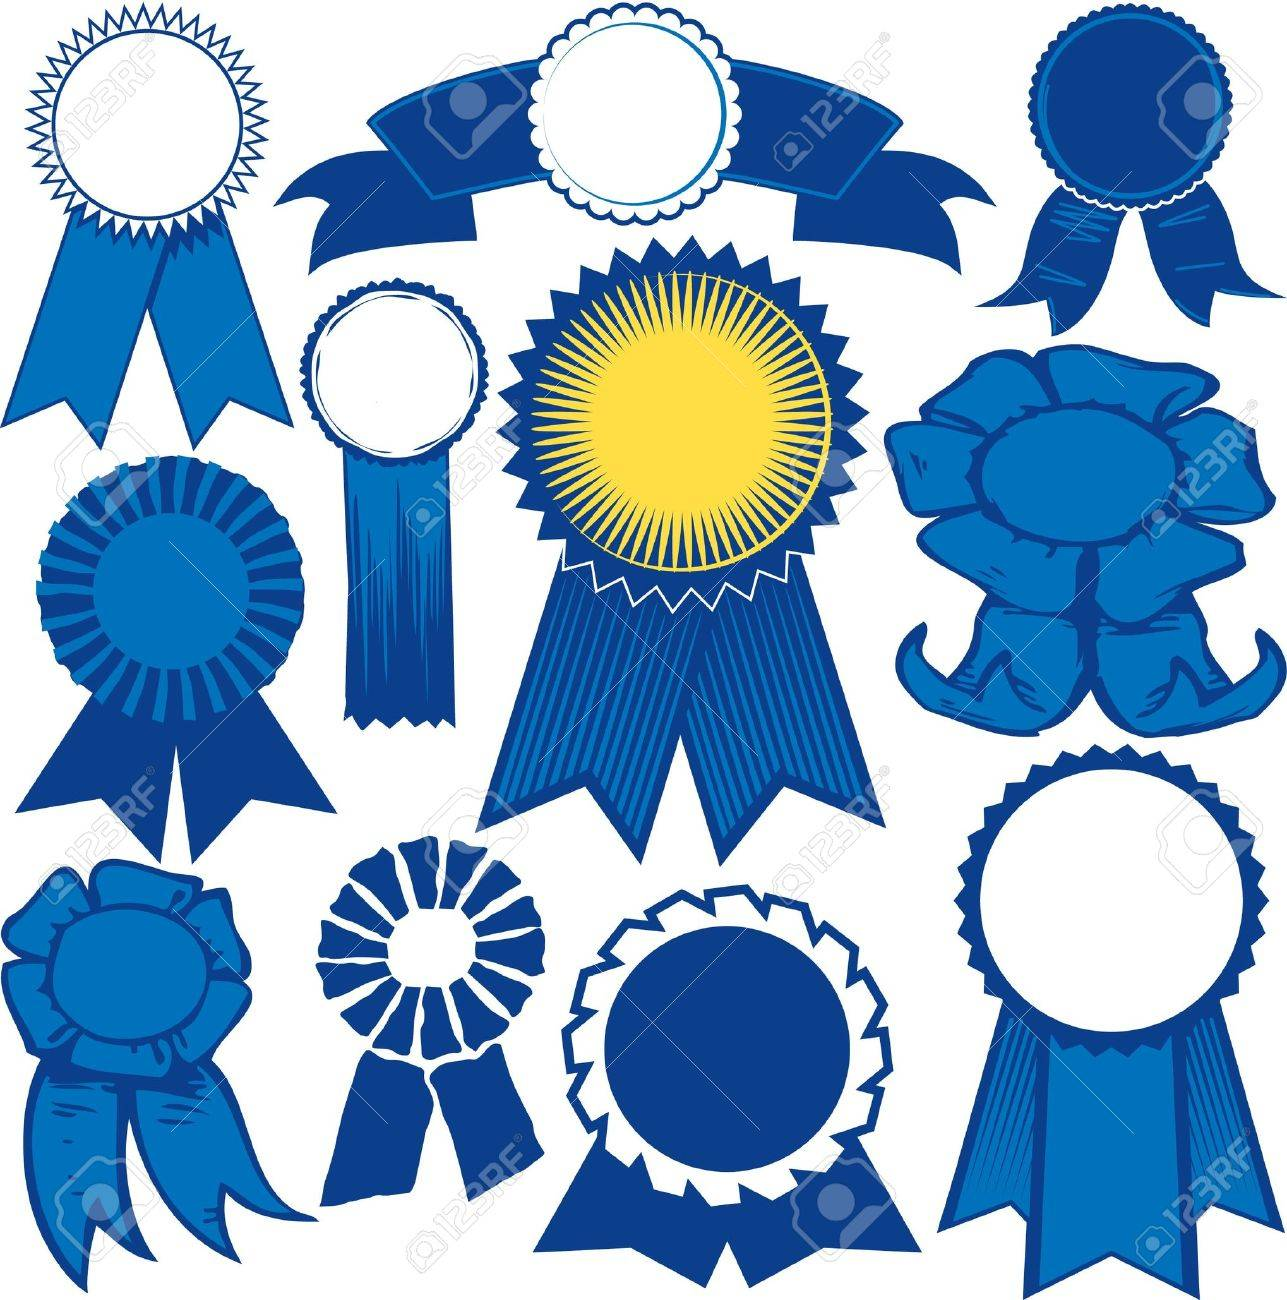 Blue Ribbon Collection Stock Vector - 12891014